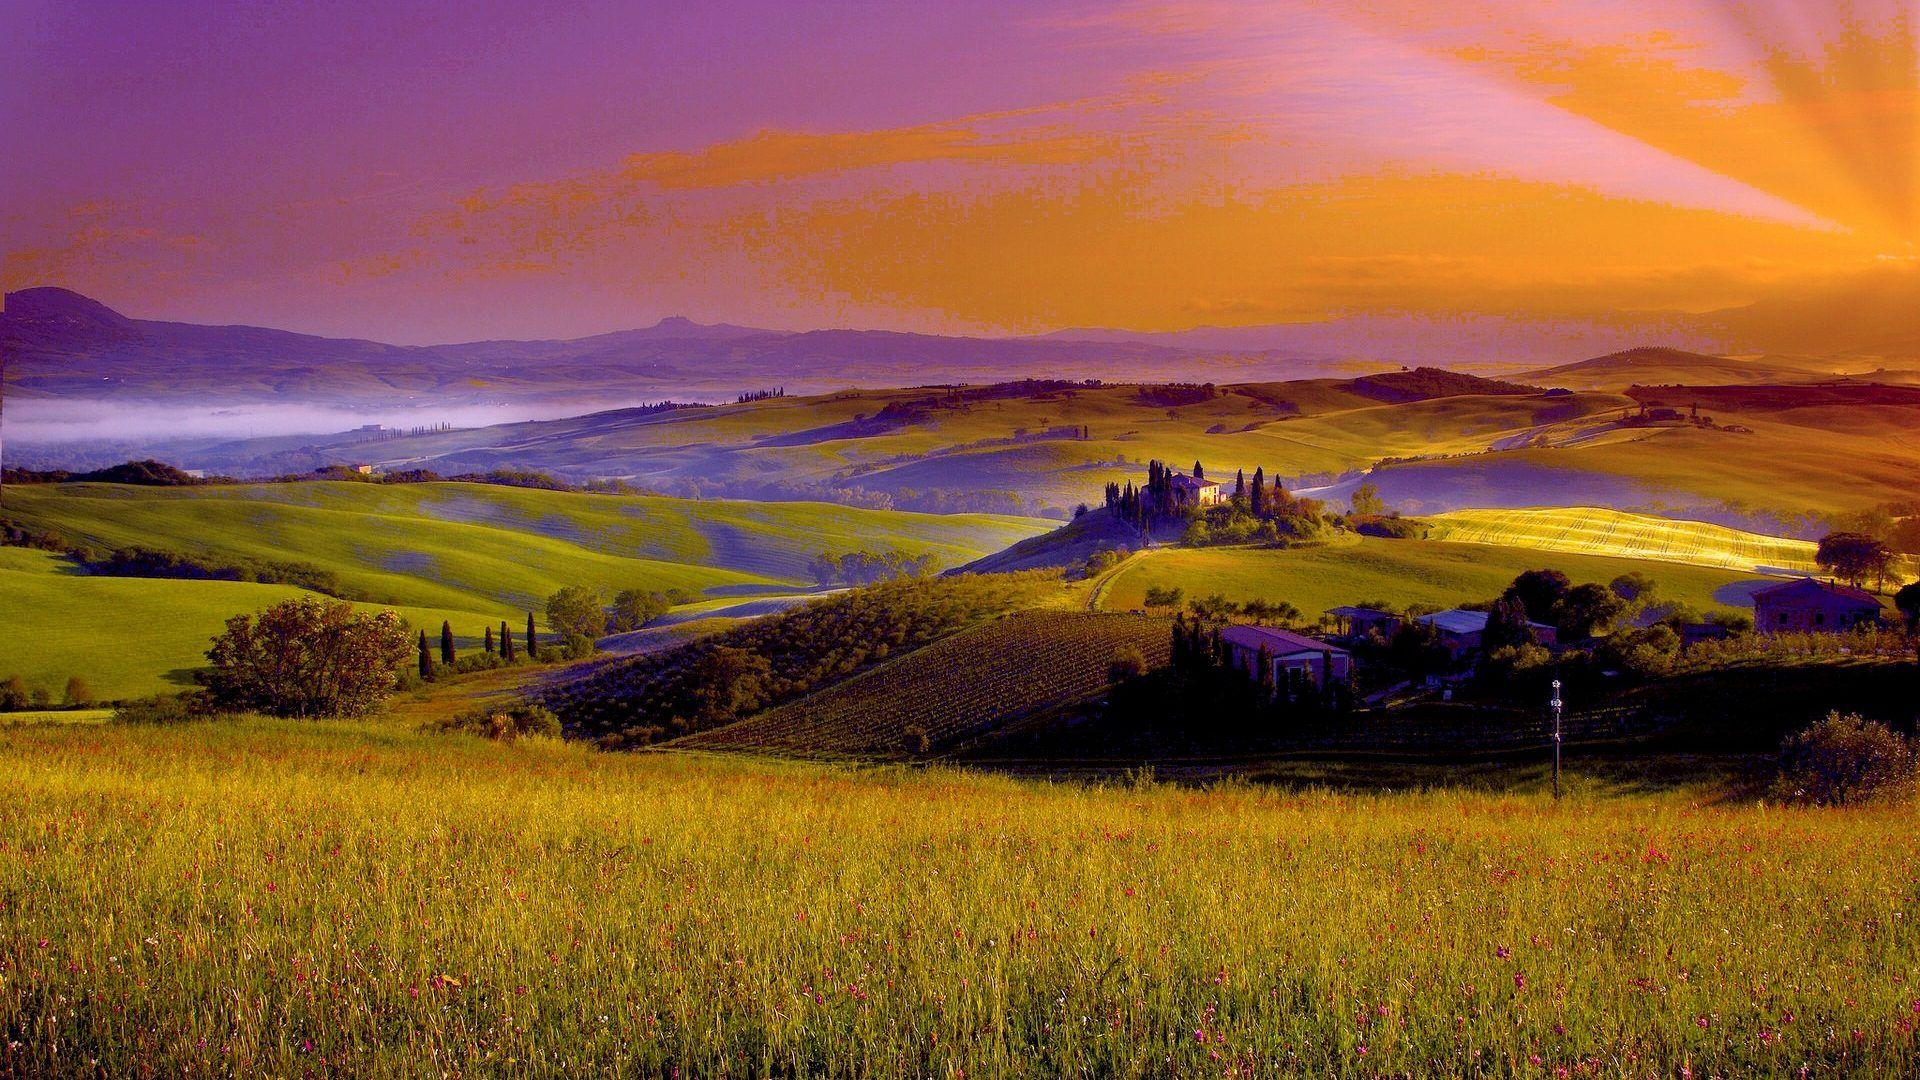 Sunset: EVENING TUSCANY PRAIRIE Sunset Scenery Wallpaper Photo for ...